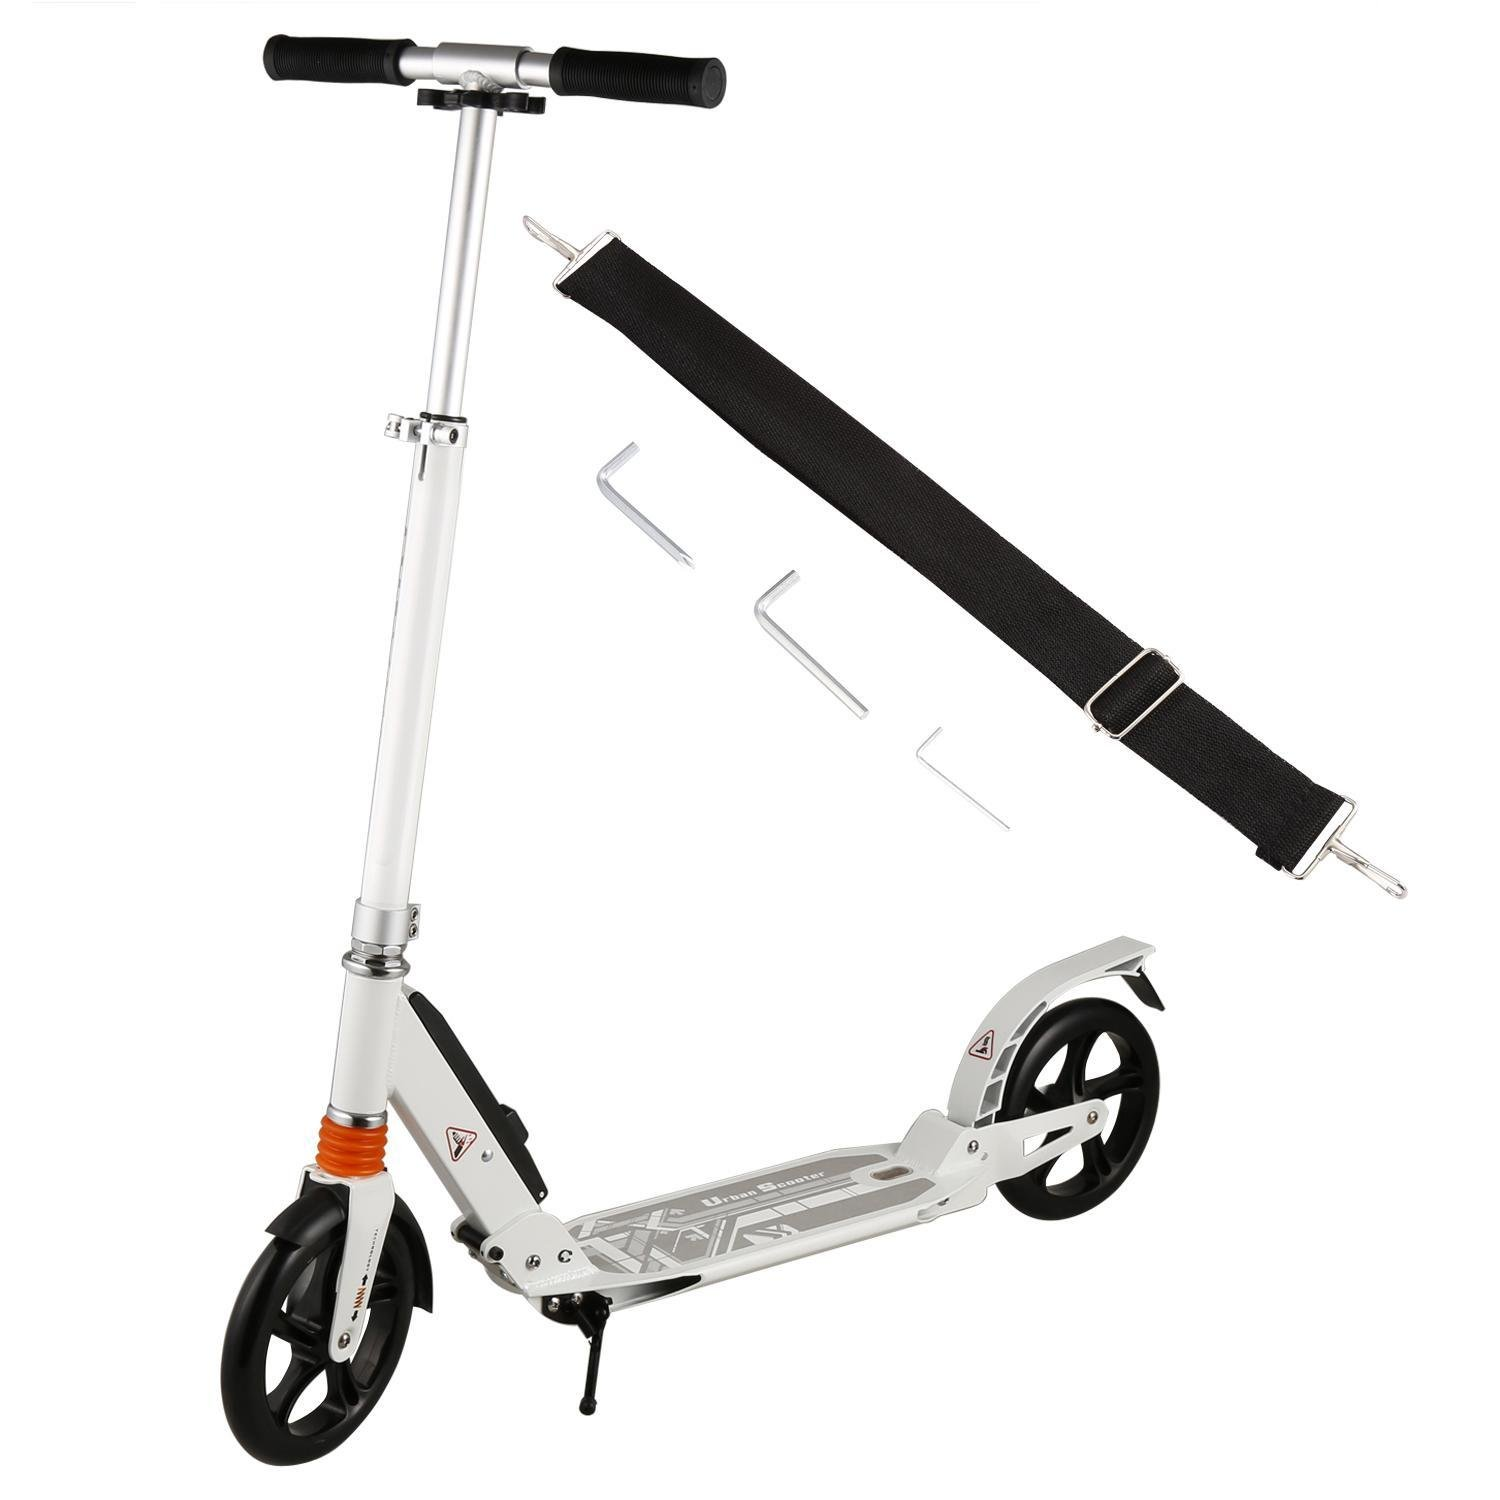 Hindom Folding Adult/Teen Kick Scooter,Height Adjustable 2-Wheel 3 Levels Kick Scooter with Dual Suspension and Rear Brakes,Street Push Scooter for City Urban Riders(US STOCK)